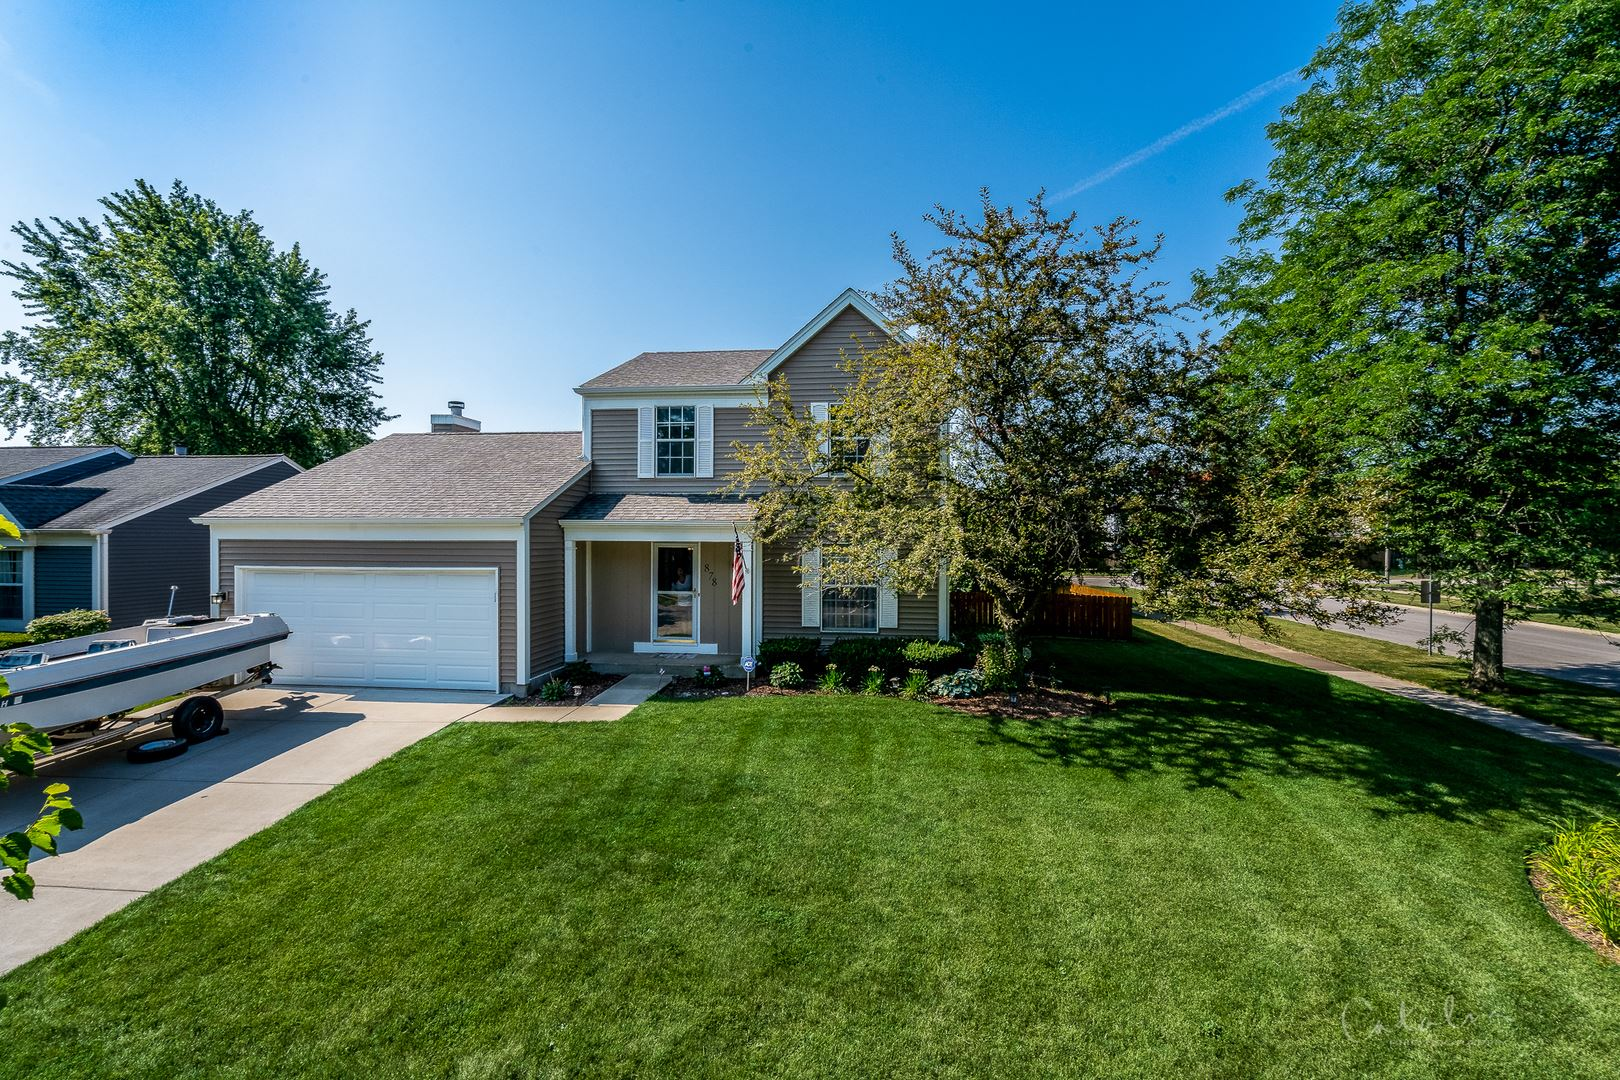 878 ROYAL GLEN Lane, Carol Stream, IL 60188 - #: 10774887